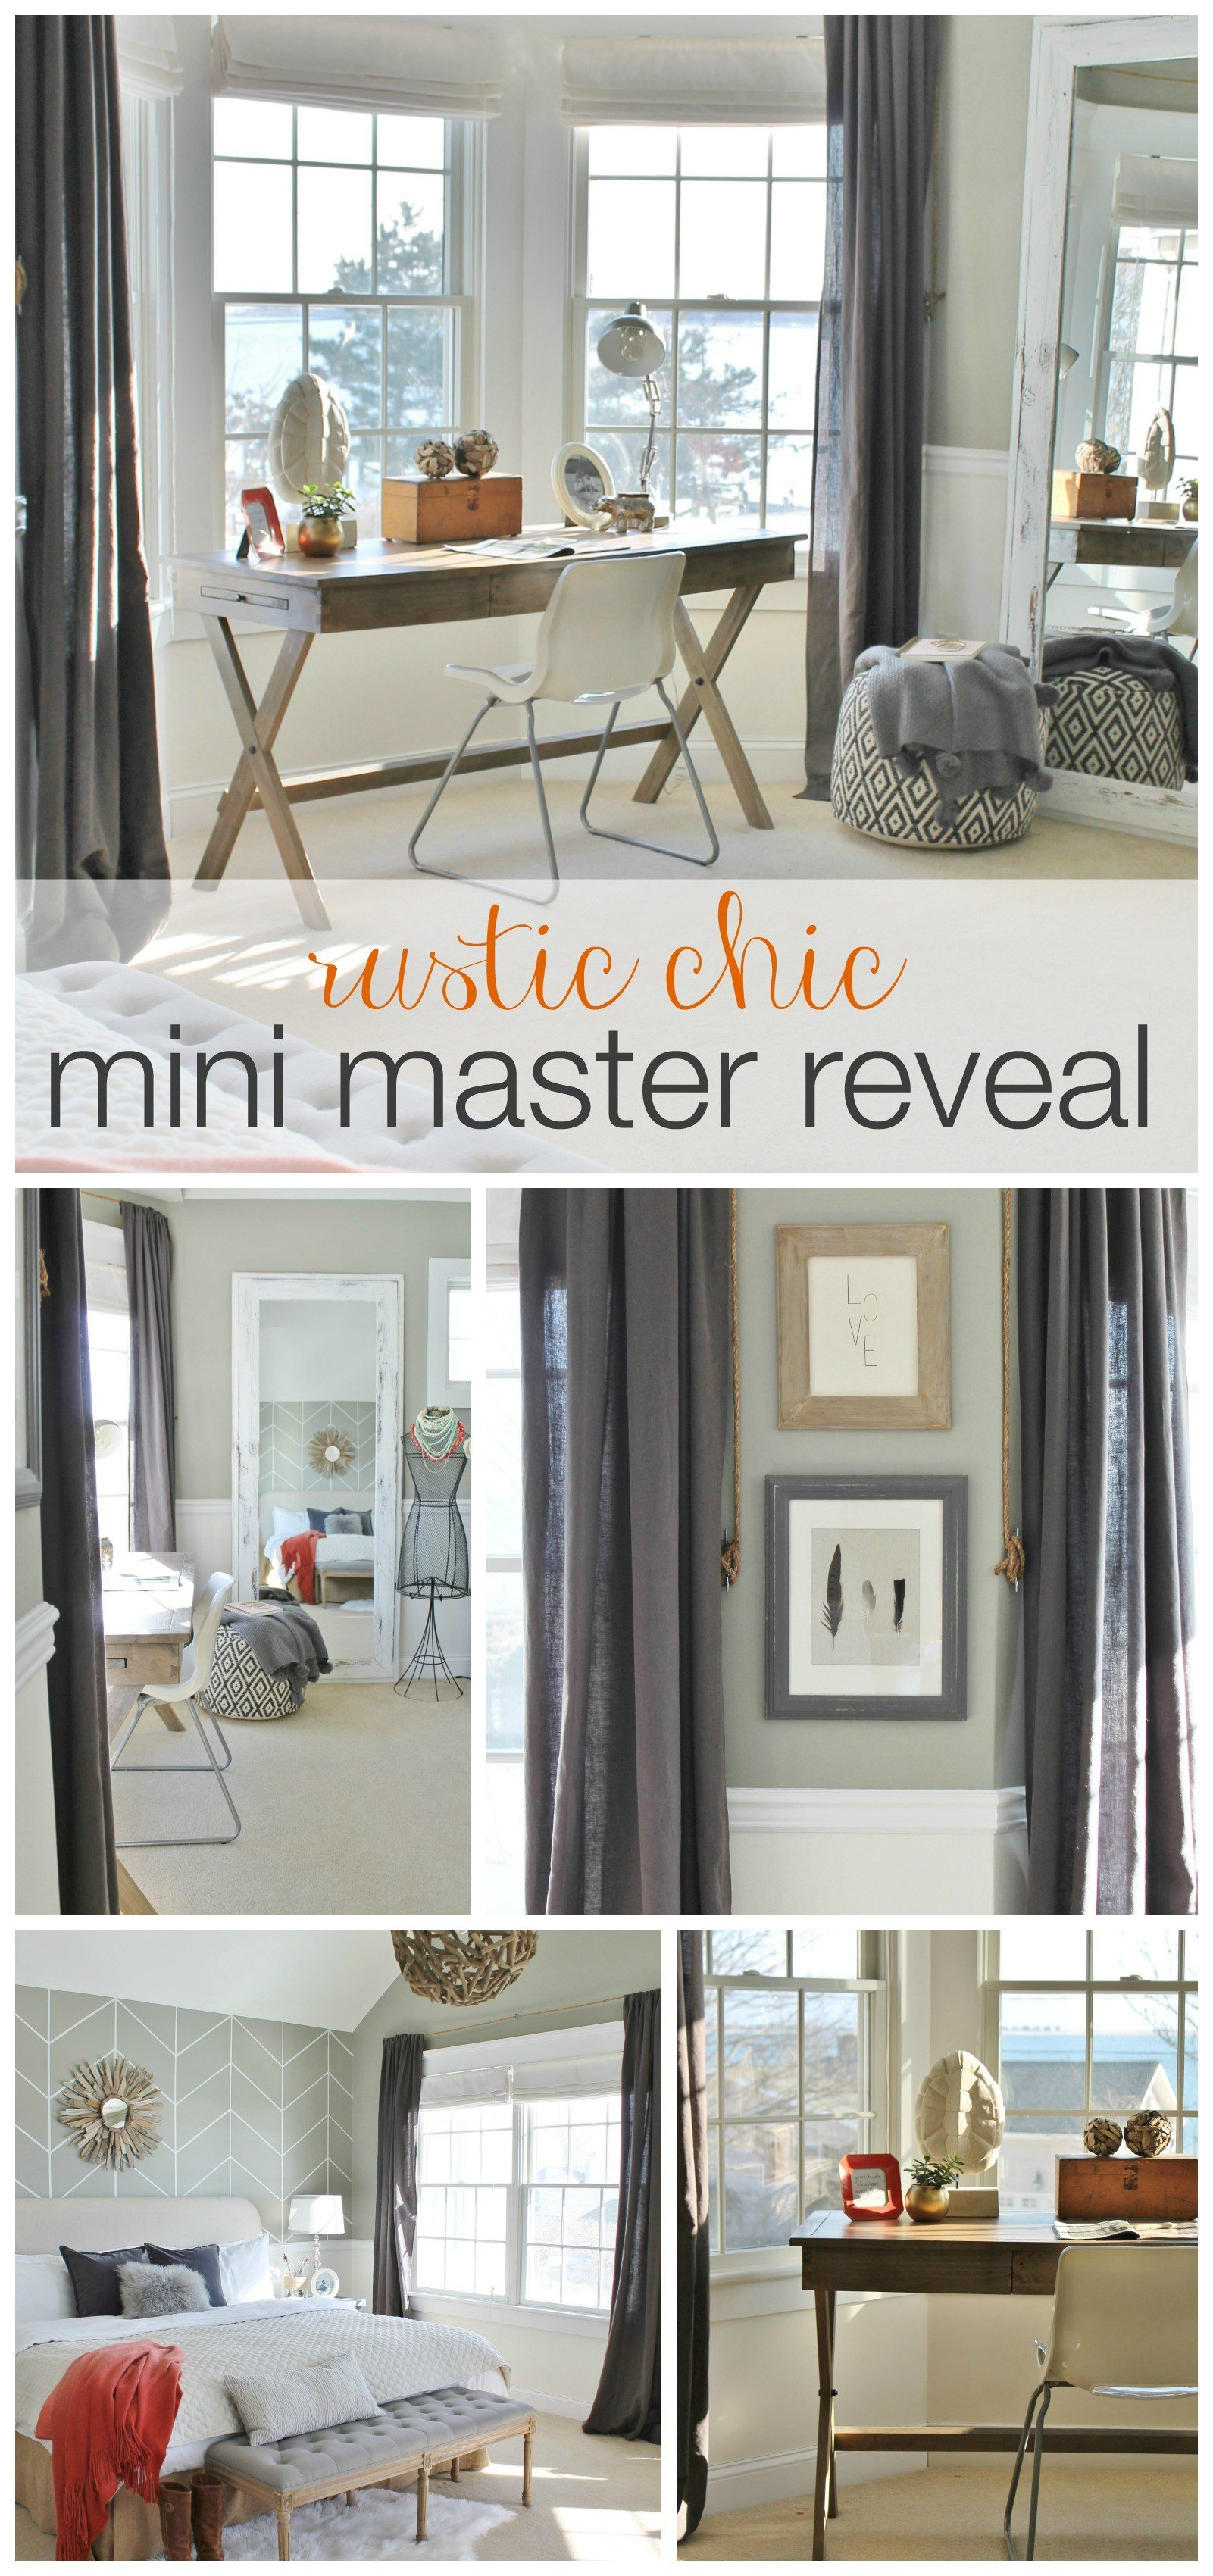 Best Rustic Chic Mini Master Reveal My Desk With Pictures